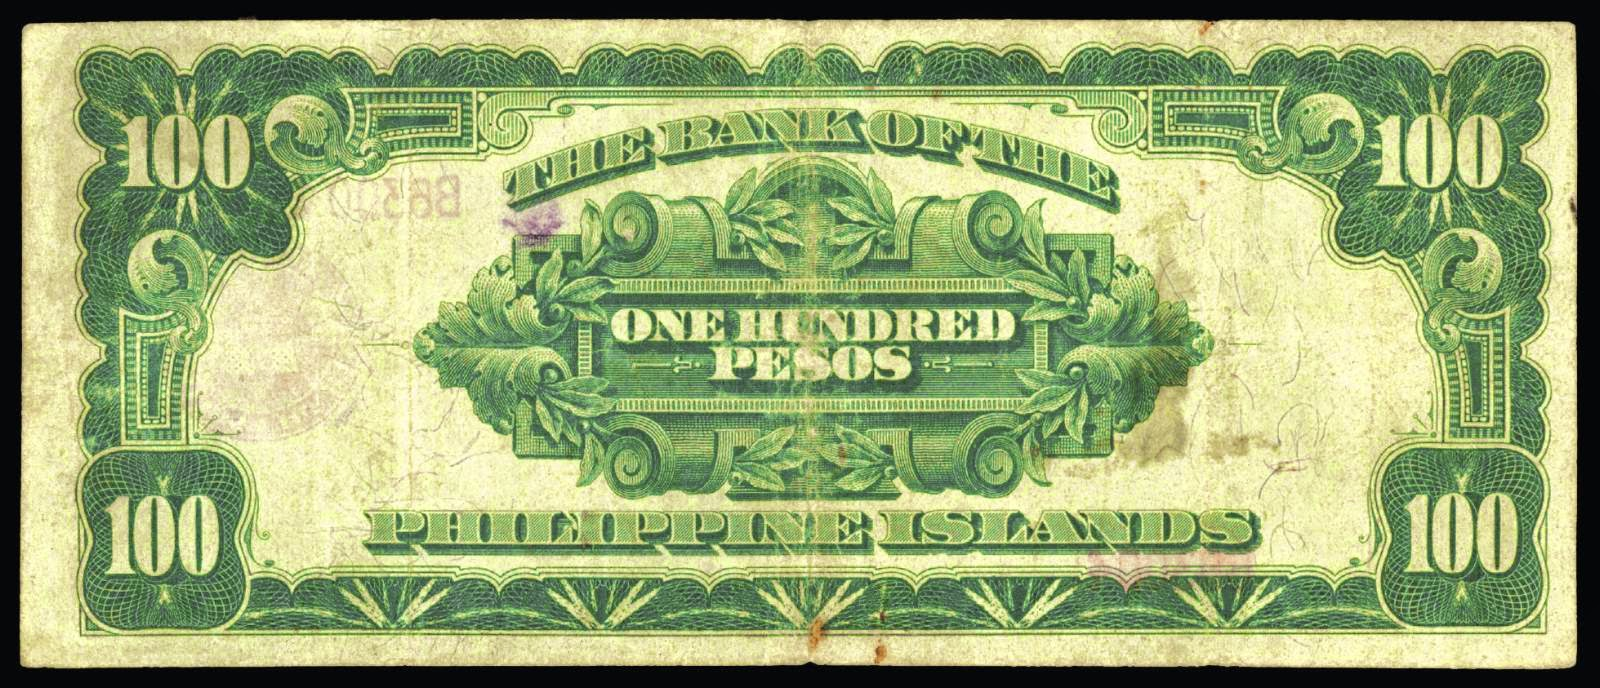 THE BANK OF THE PHILIPPINE ISLANDS paper money ONE HUNDRED PESOS